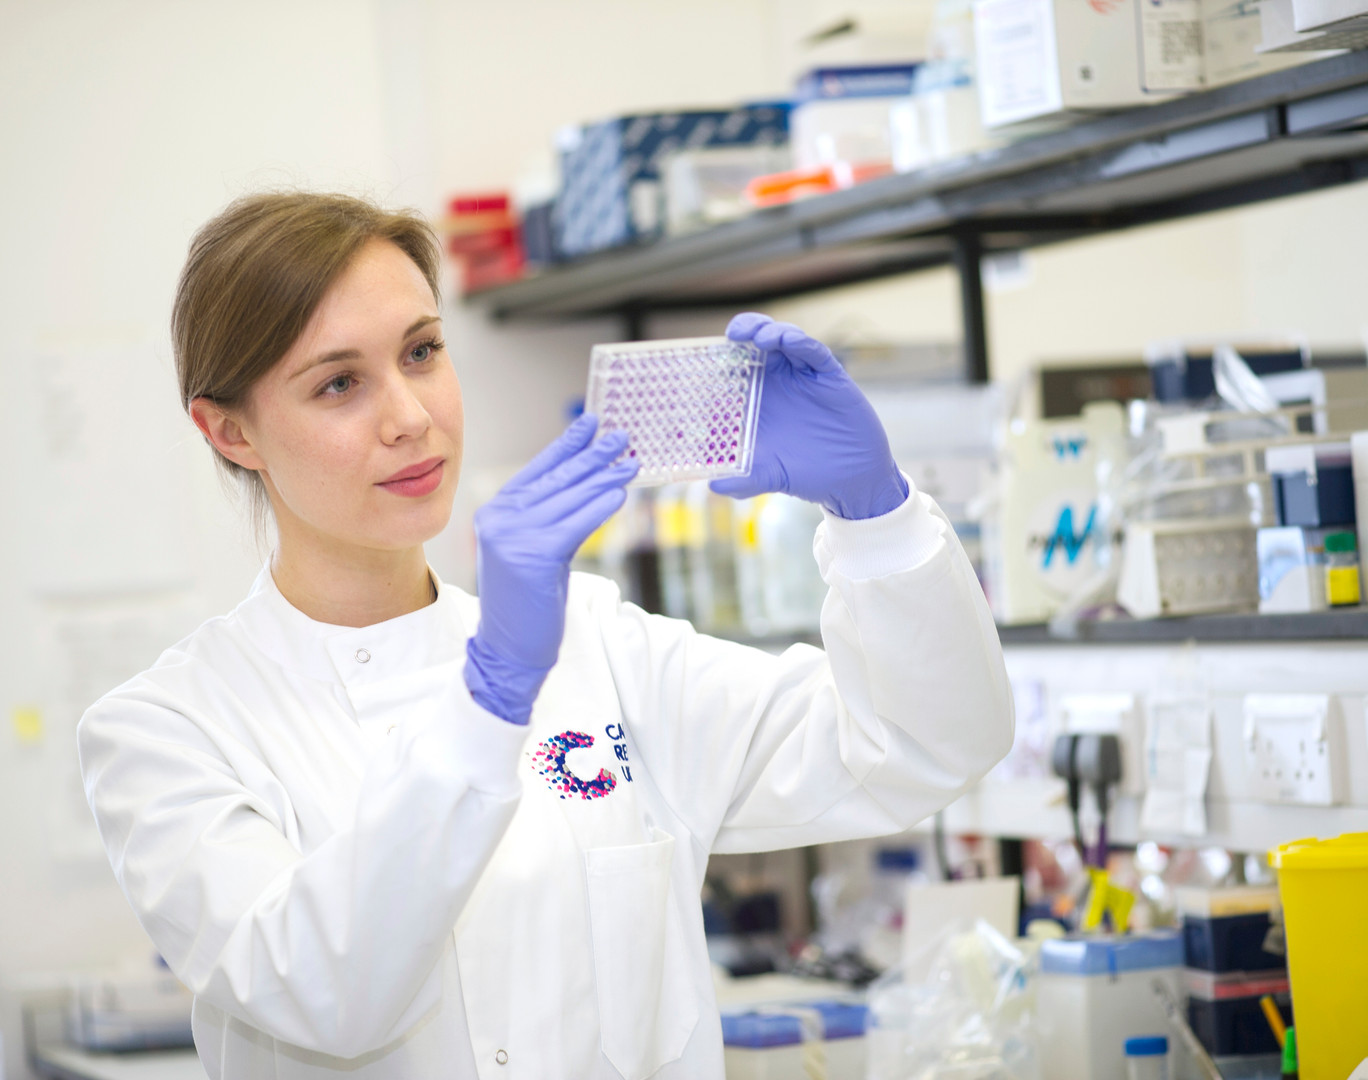 Cancer Research Lab PR Photography by Sirastudio. Photographers in Harrogate.